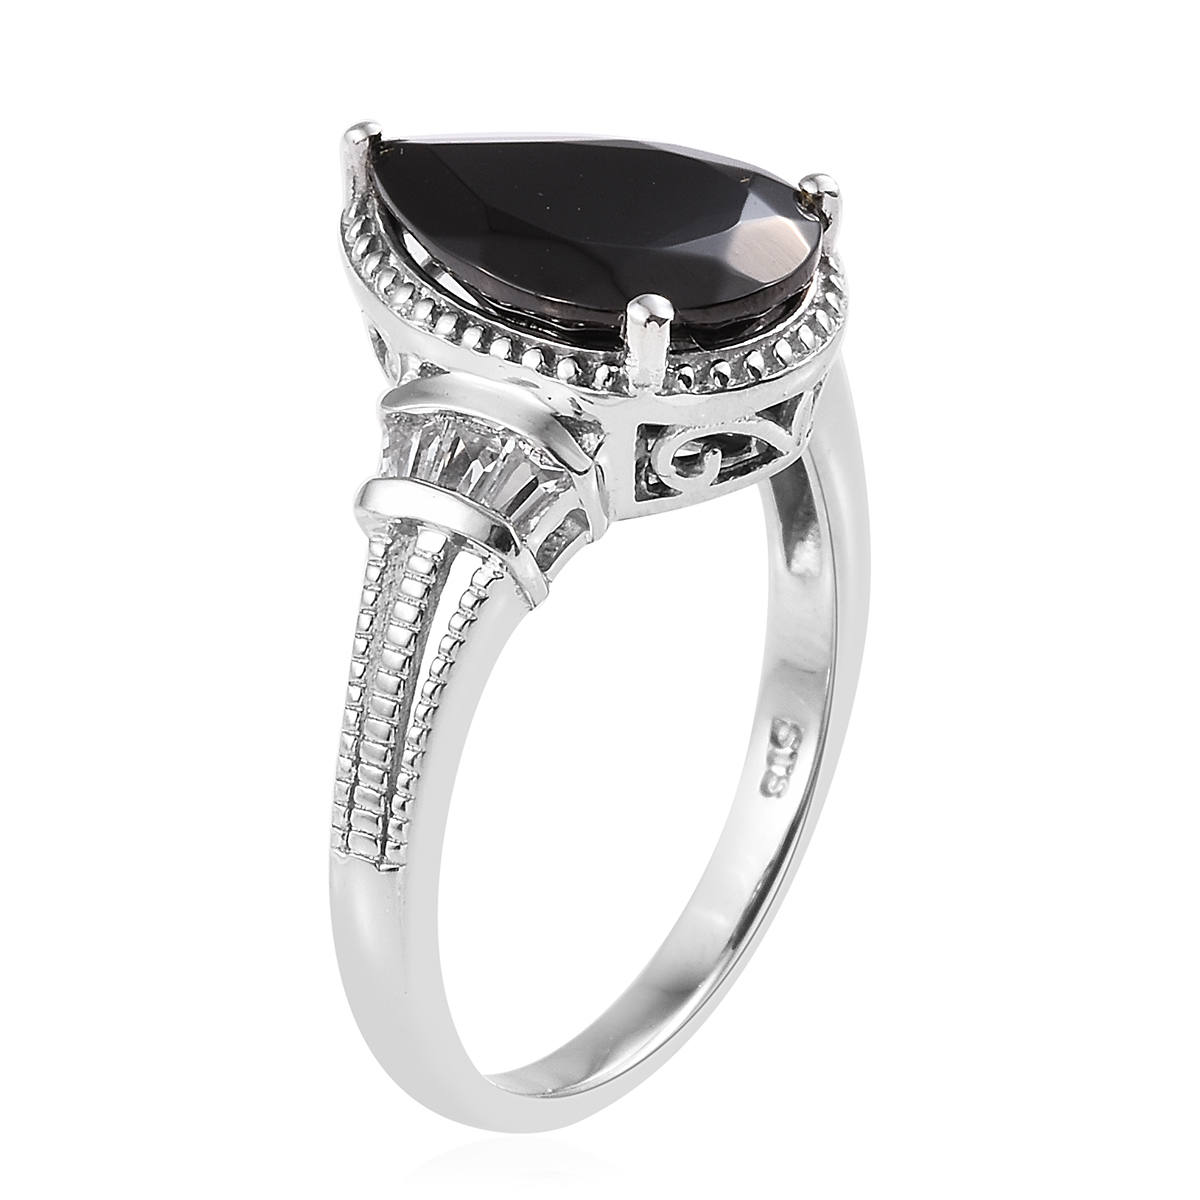 Shungite, White Topaz Ring in Platinum Over Sterling Silver (Size 5.0) 3.32 ctw